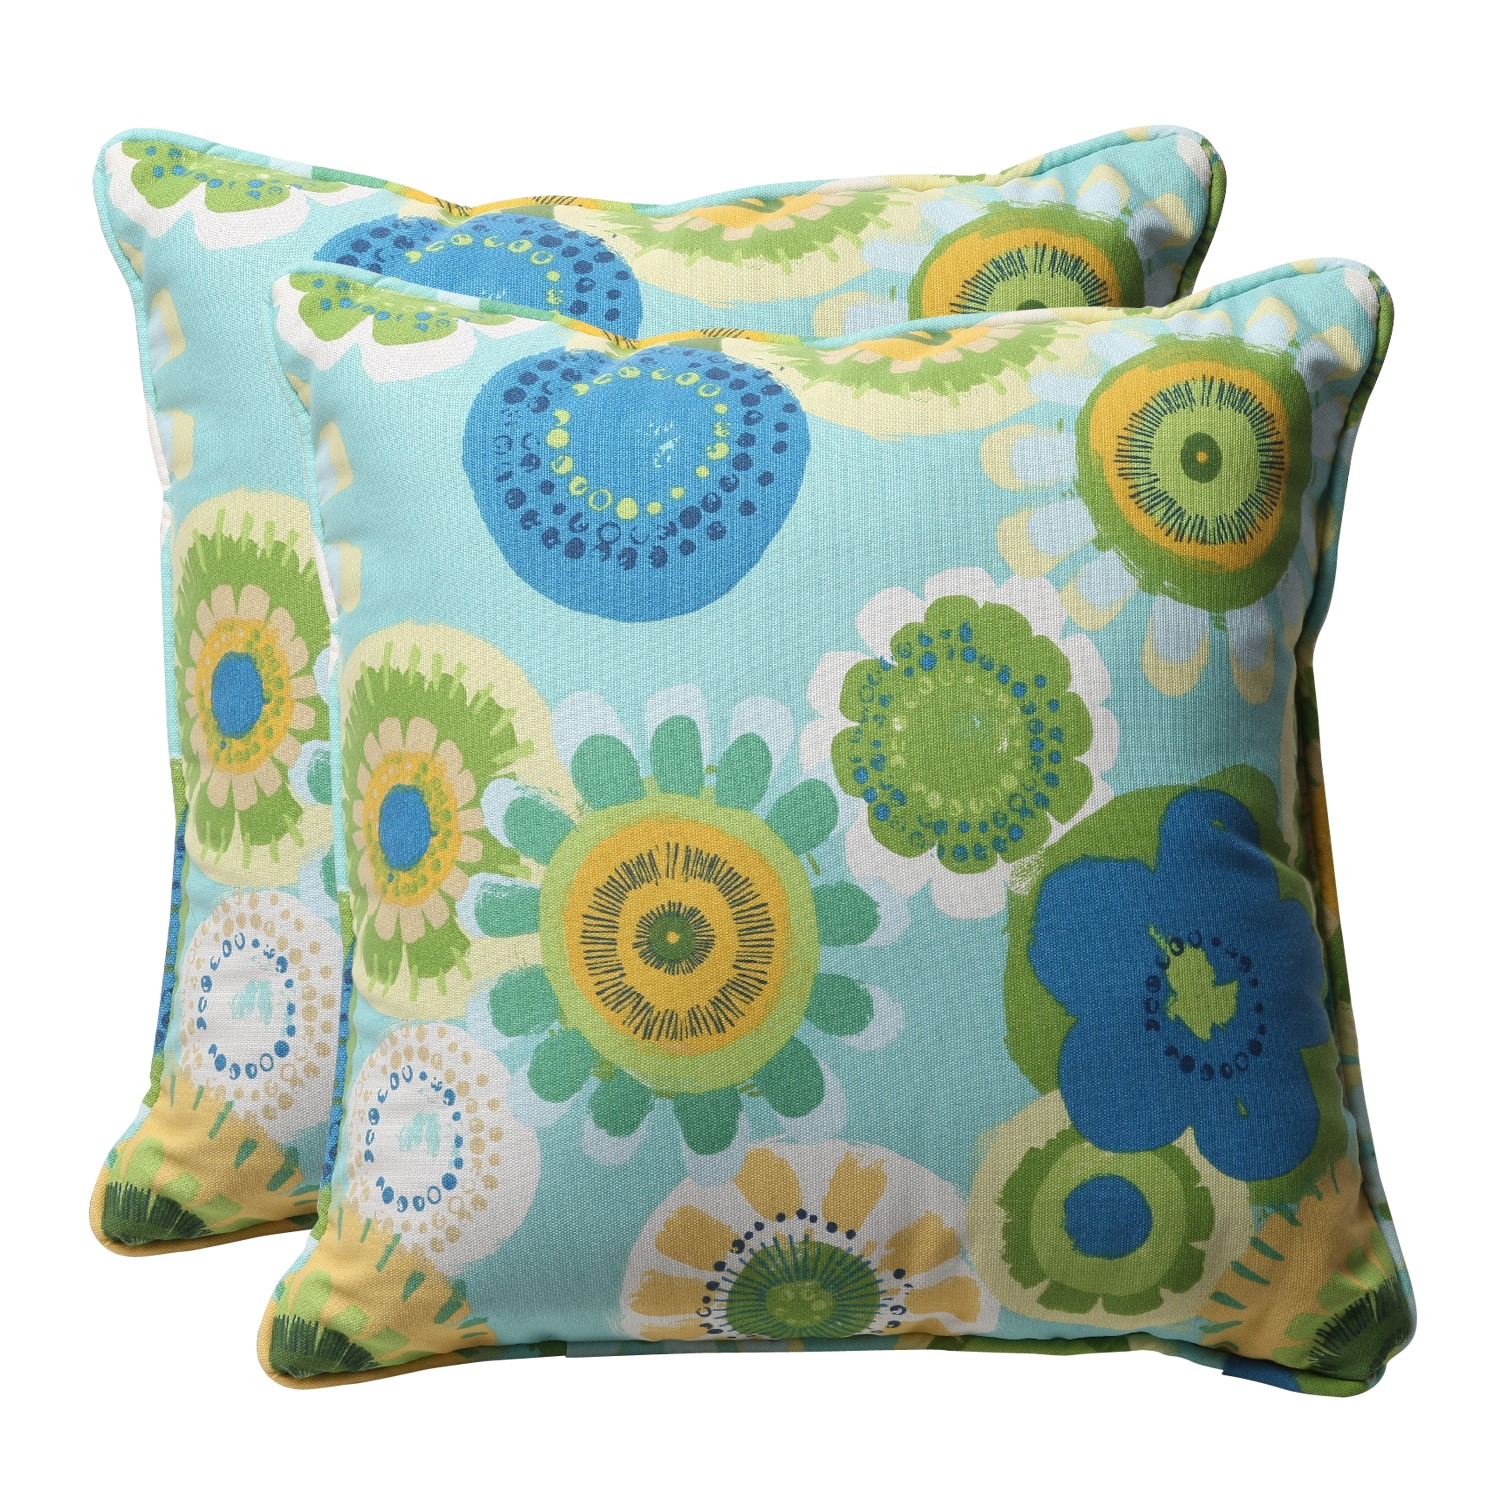 Decorative Blue/ Green Floral Square Outdoor Toss Pillows (Set of 2)